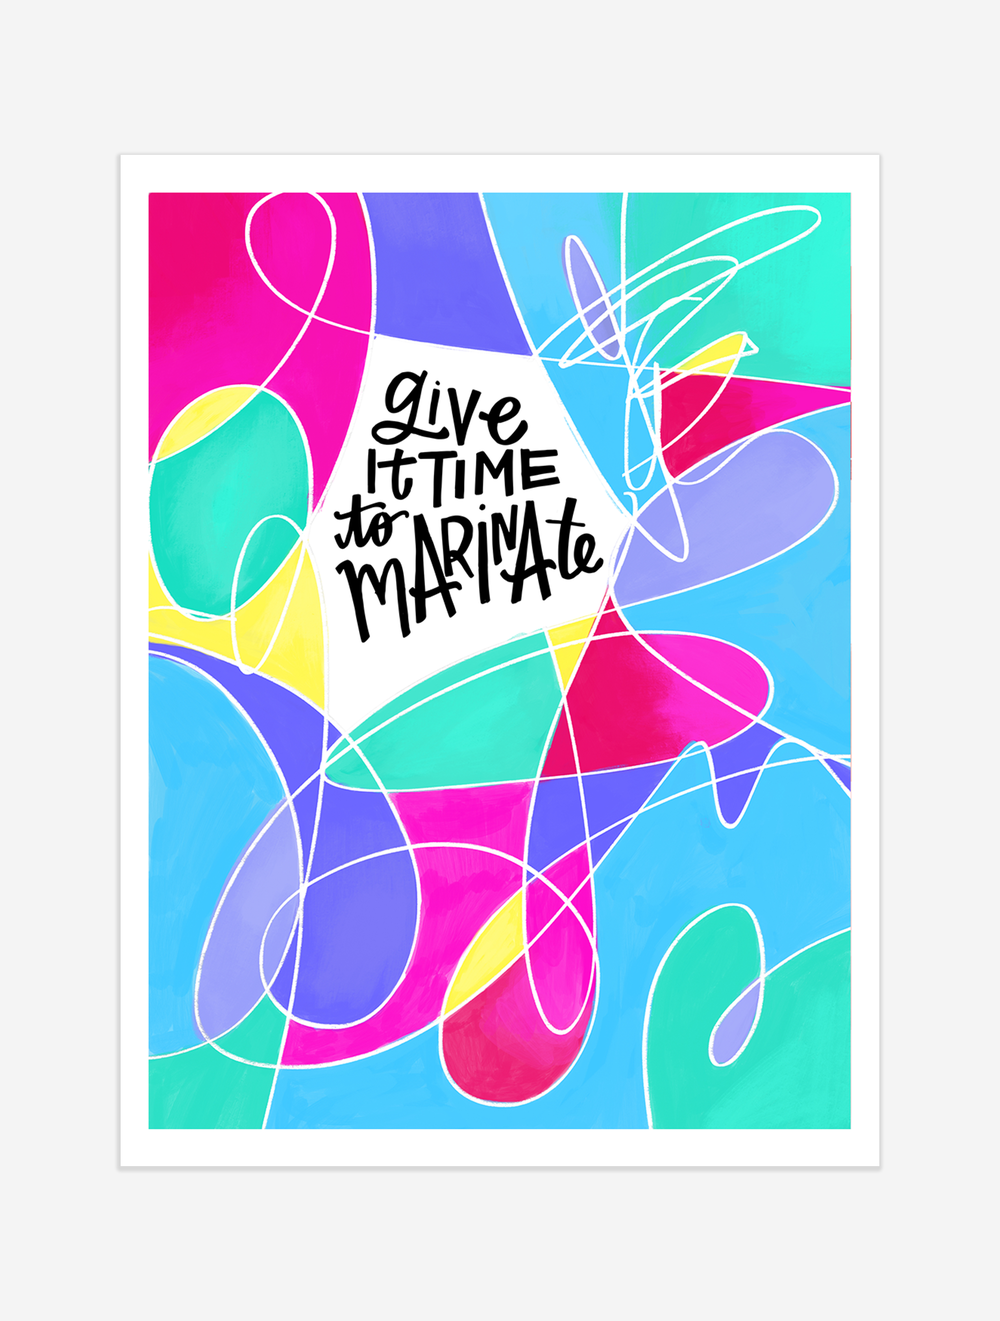 A reminder to give your ideas some space and time. $25 giclee print available at the Made Vibrant Art Shop.